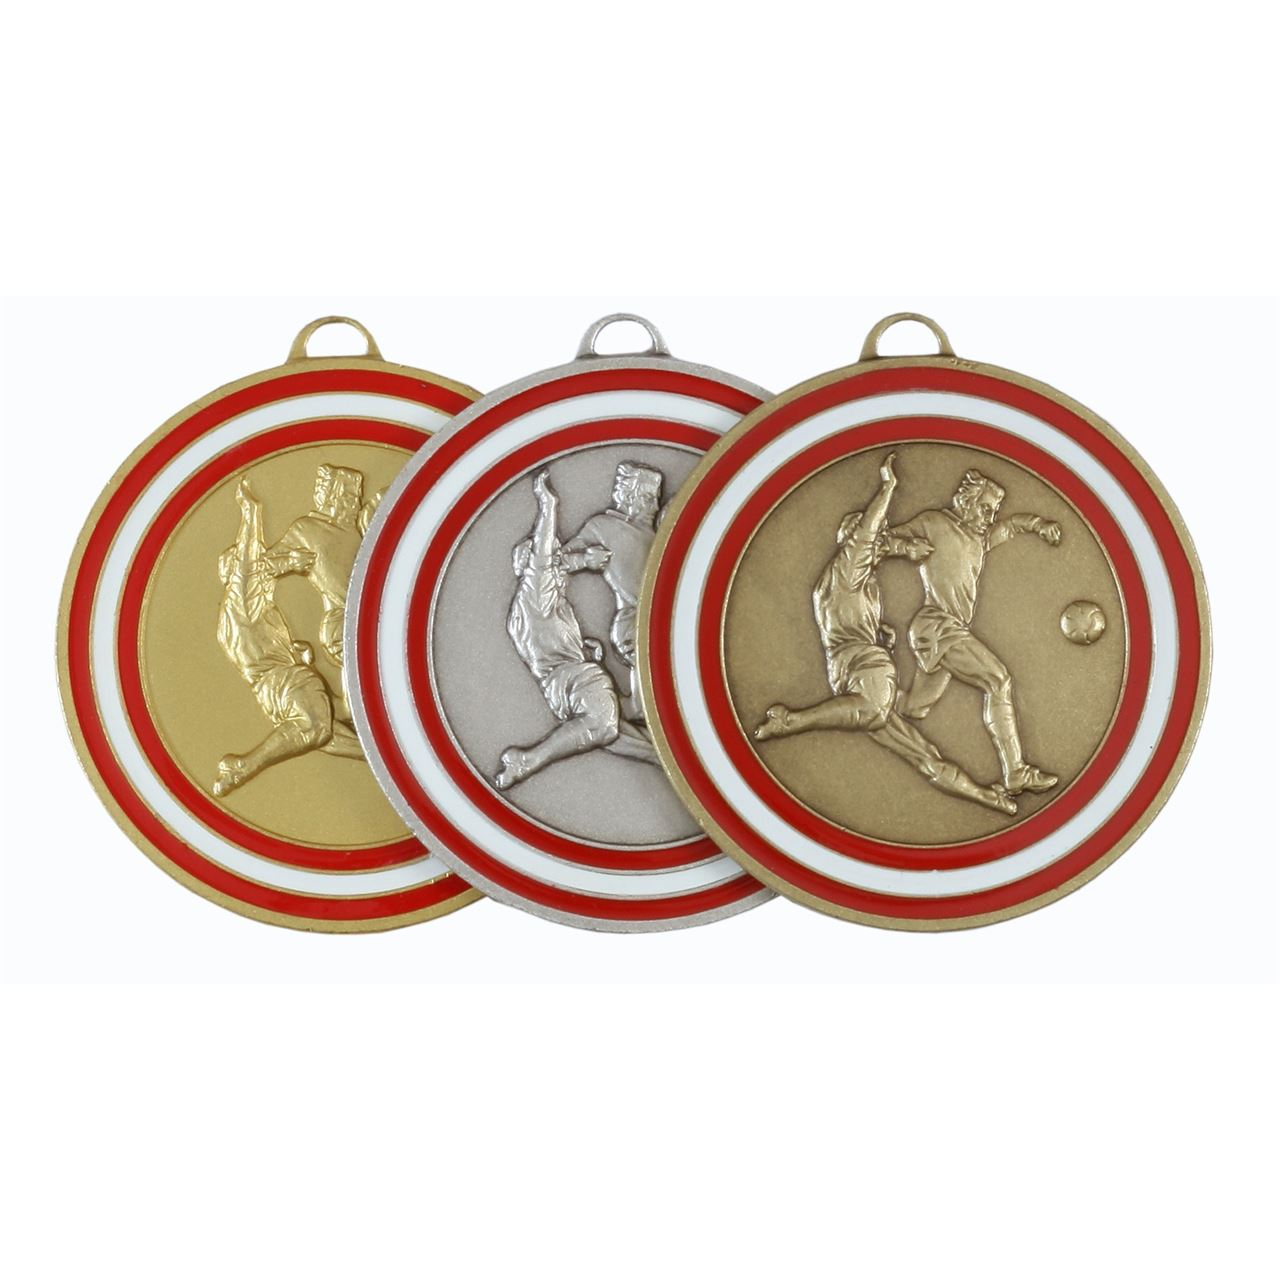 Red Coloured Enamel Football Medal (size: 50mm) - 175